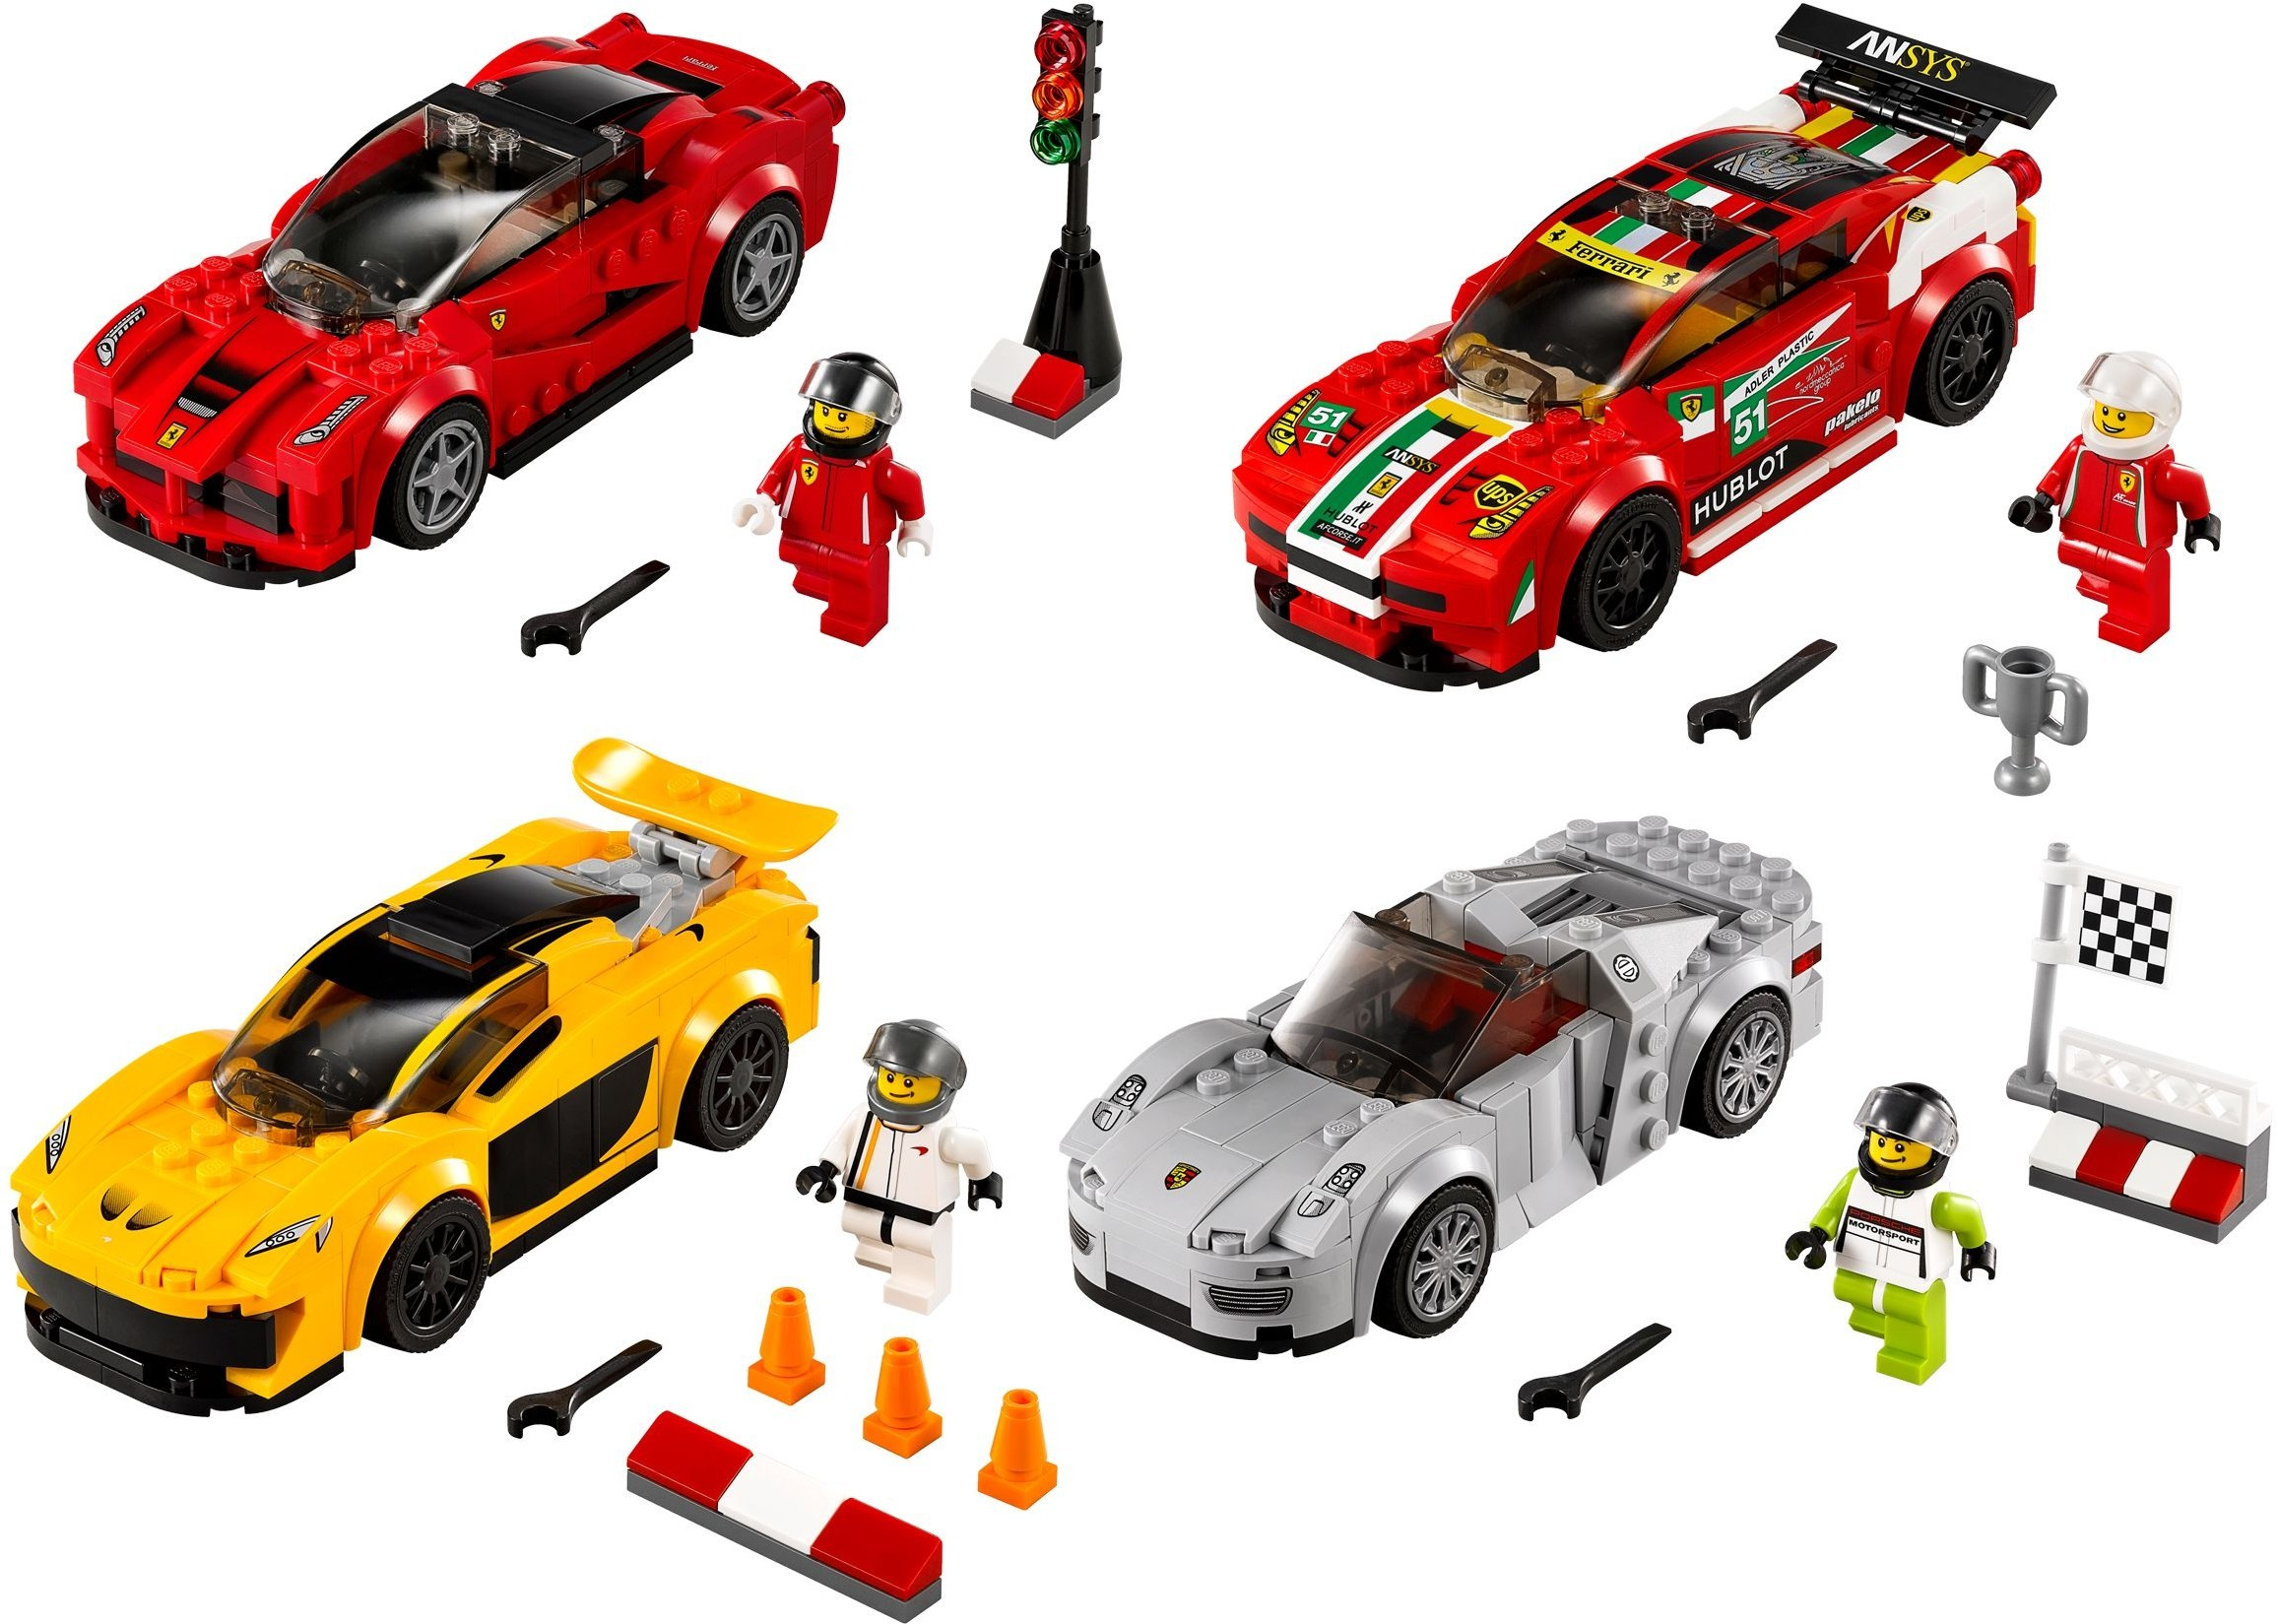 lego-speed-champions-are-here-and-we-want-one-of-each-set-photo-gallery_8 Mesmerizing Porsche 918 Spyder Lego Review Cars Trend